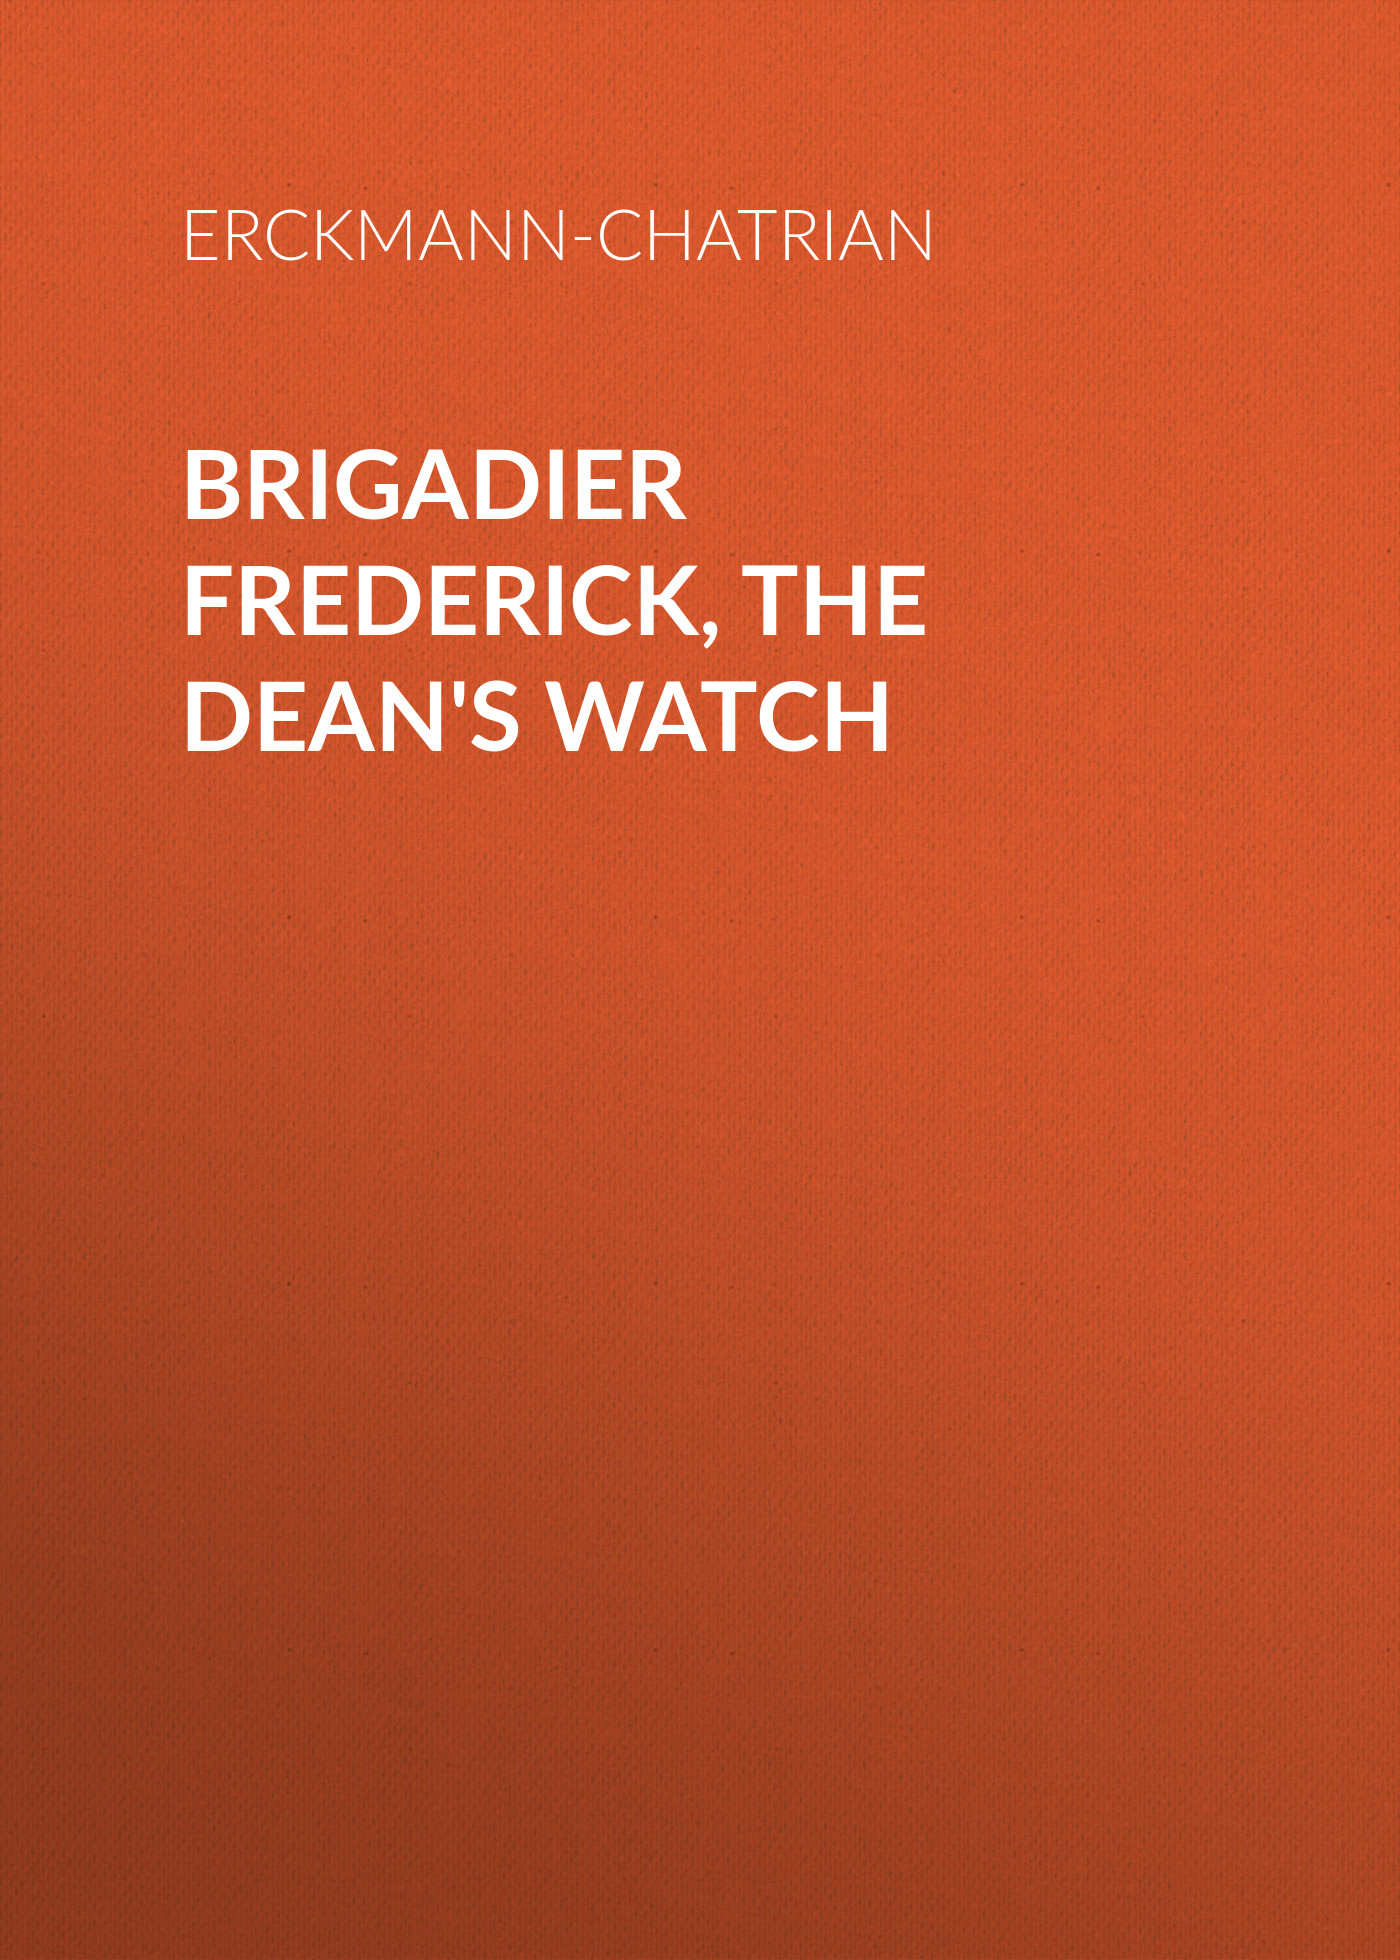 Erckmann-Chatrian Brigadier Frederick, The Dean's Watch frederick law olmsted